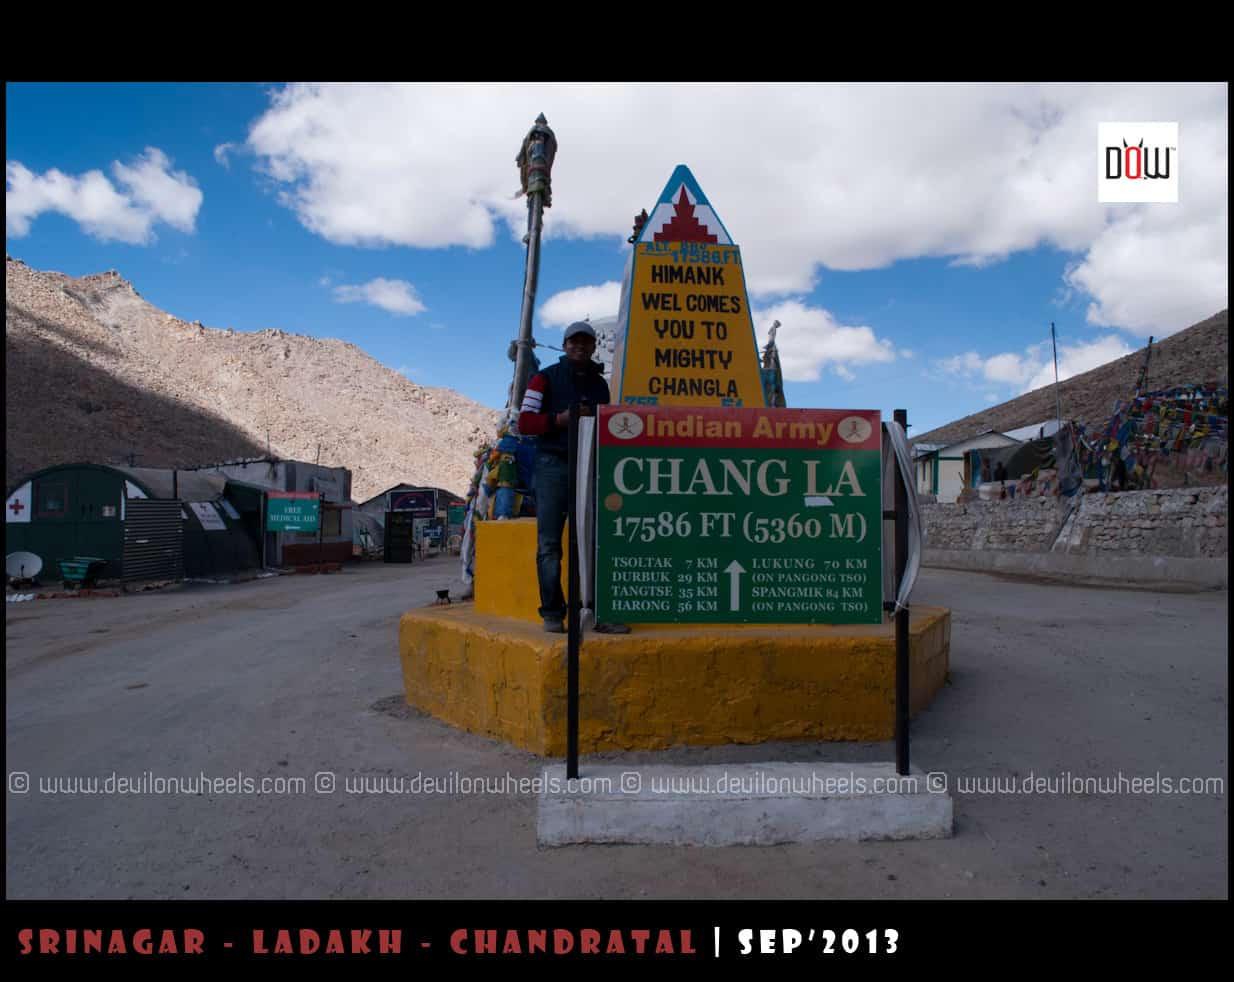 Chang La - Top 13 Highest Motorable Passes or Roads in the world